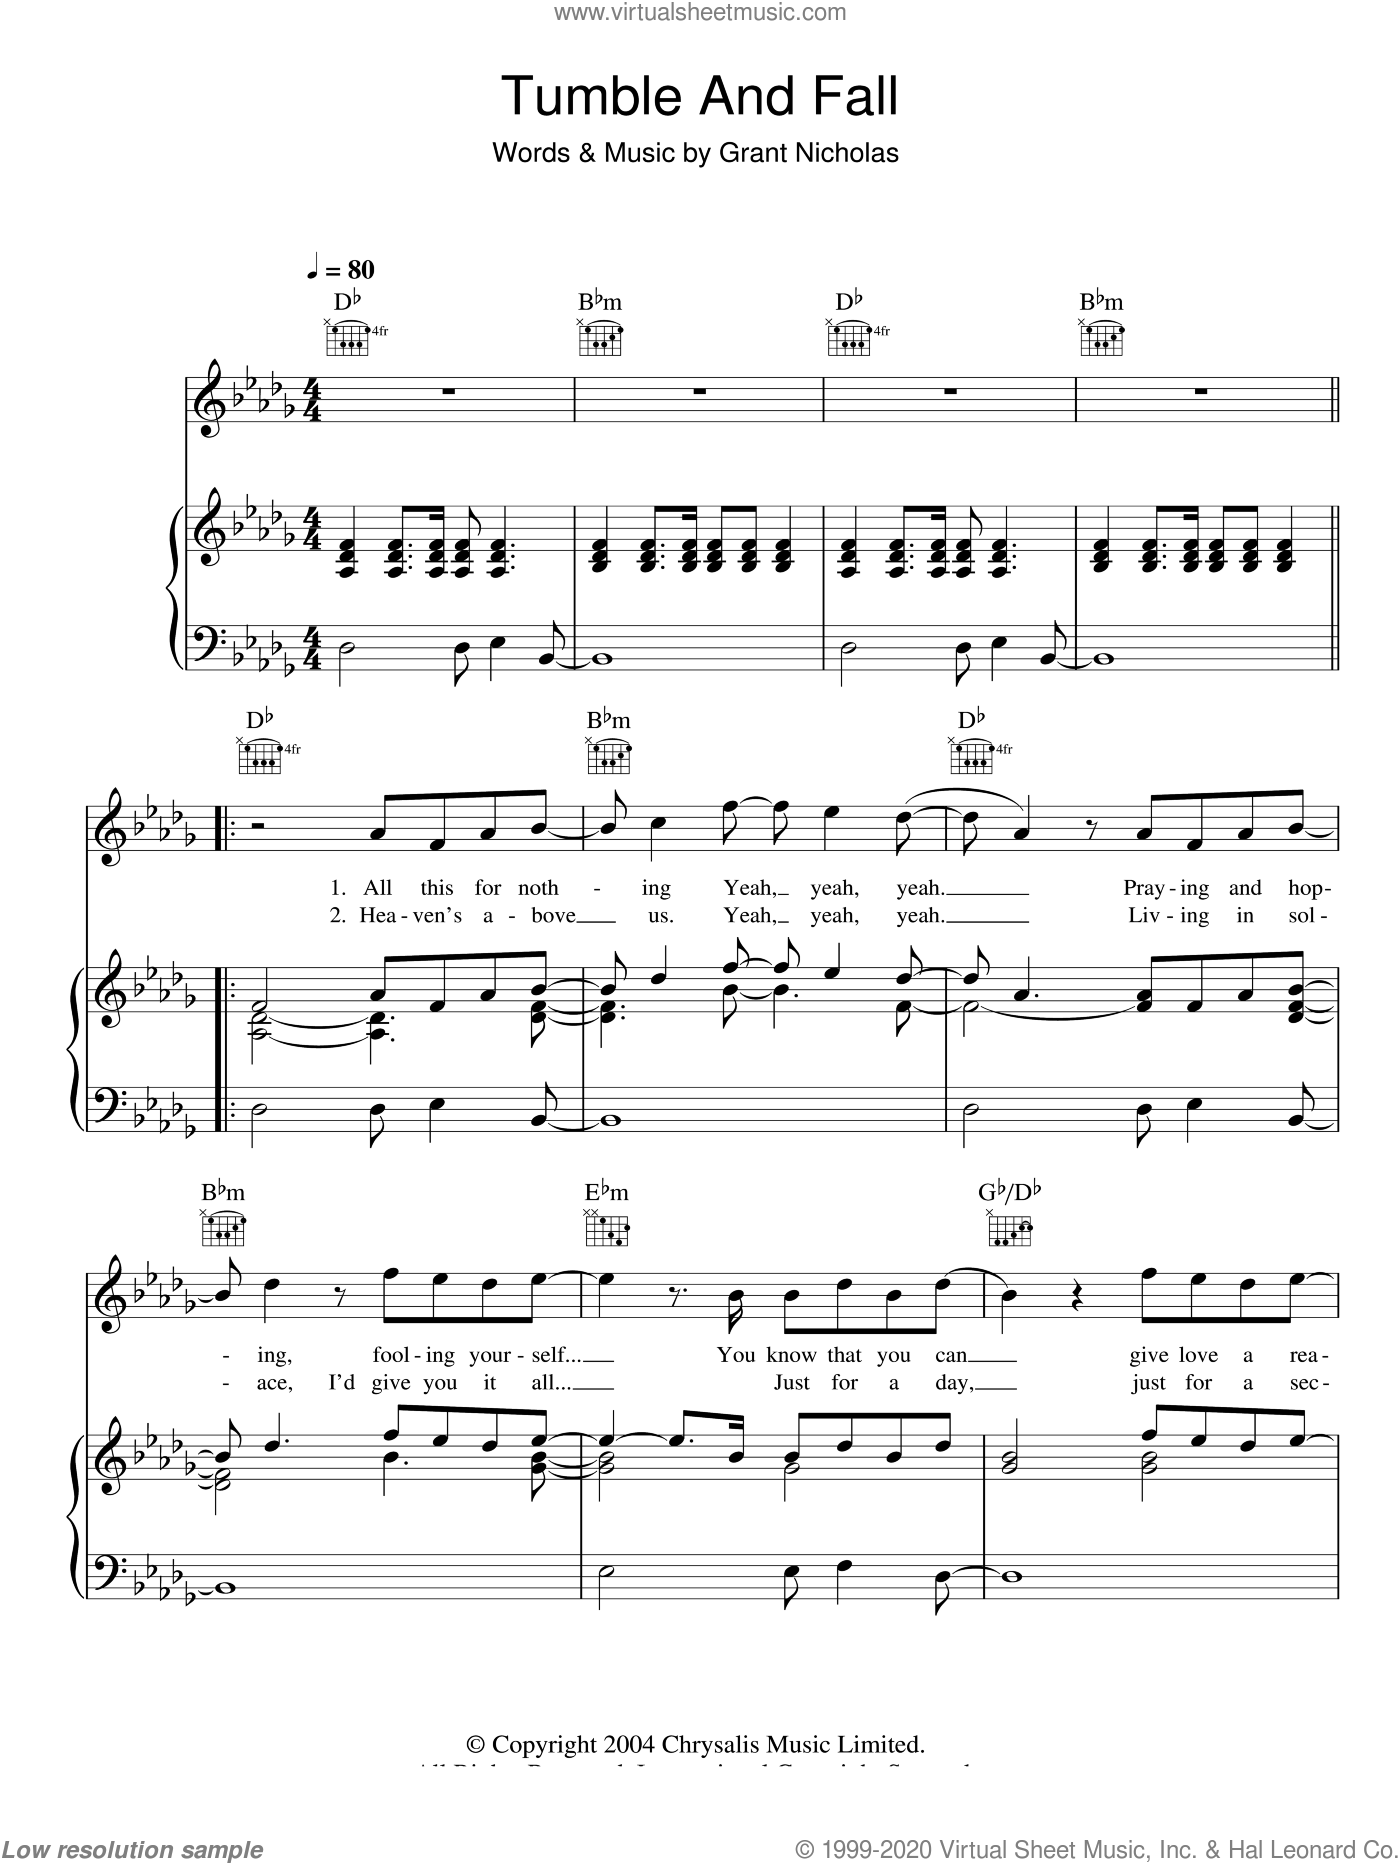 Tumble And Fall sheet music for voice, piano or guitar by Grant Nicholas